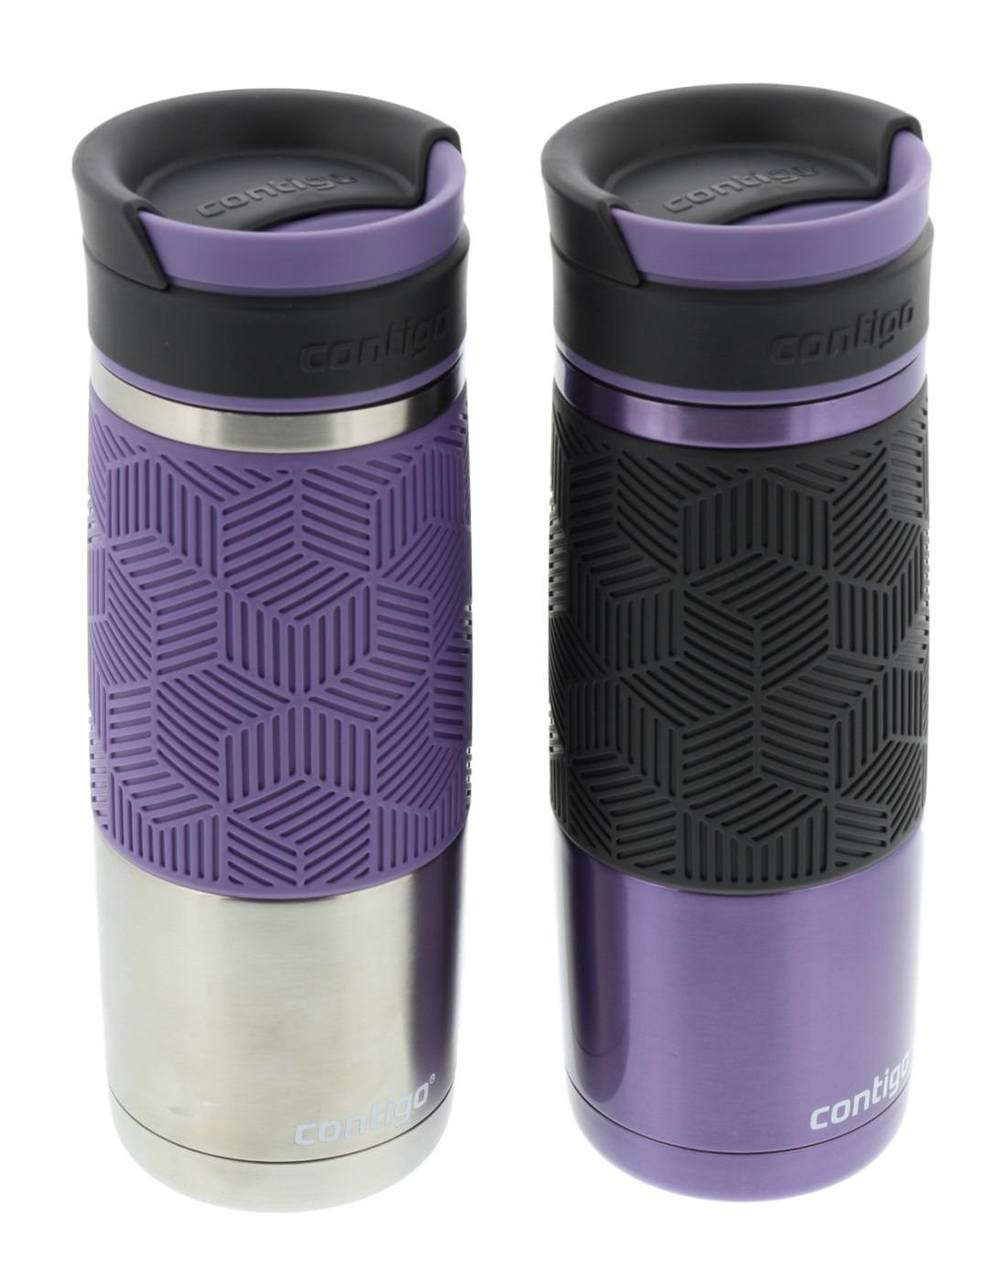 https://d3d71ba2asa5oz.cloudfront.net/23000296/images/contigo-autoseal-transit-travel-mug-stainless-and-violet-2pk-c.jpg